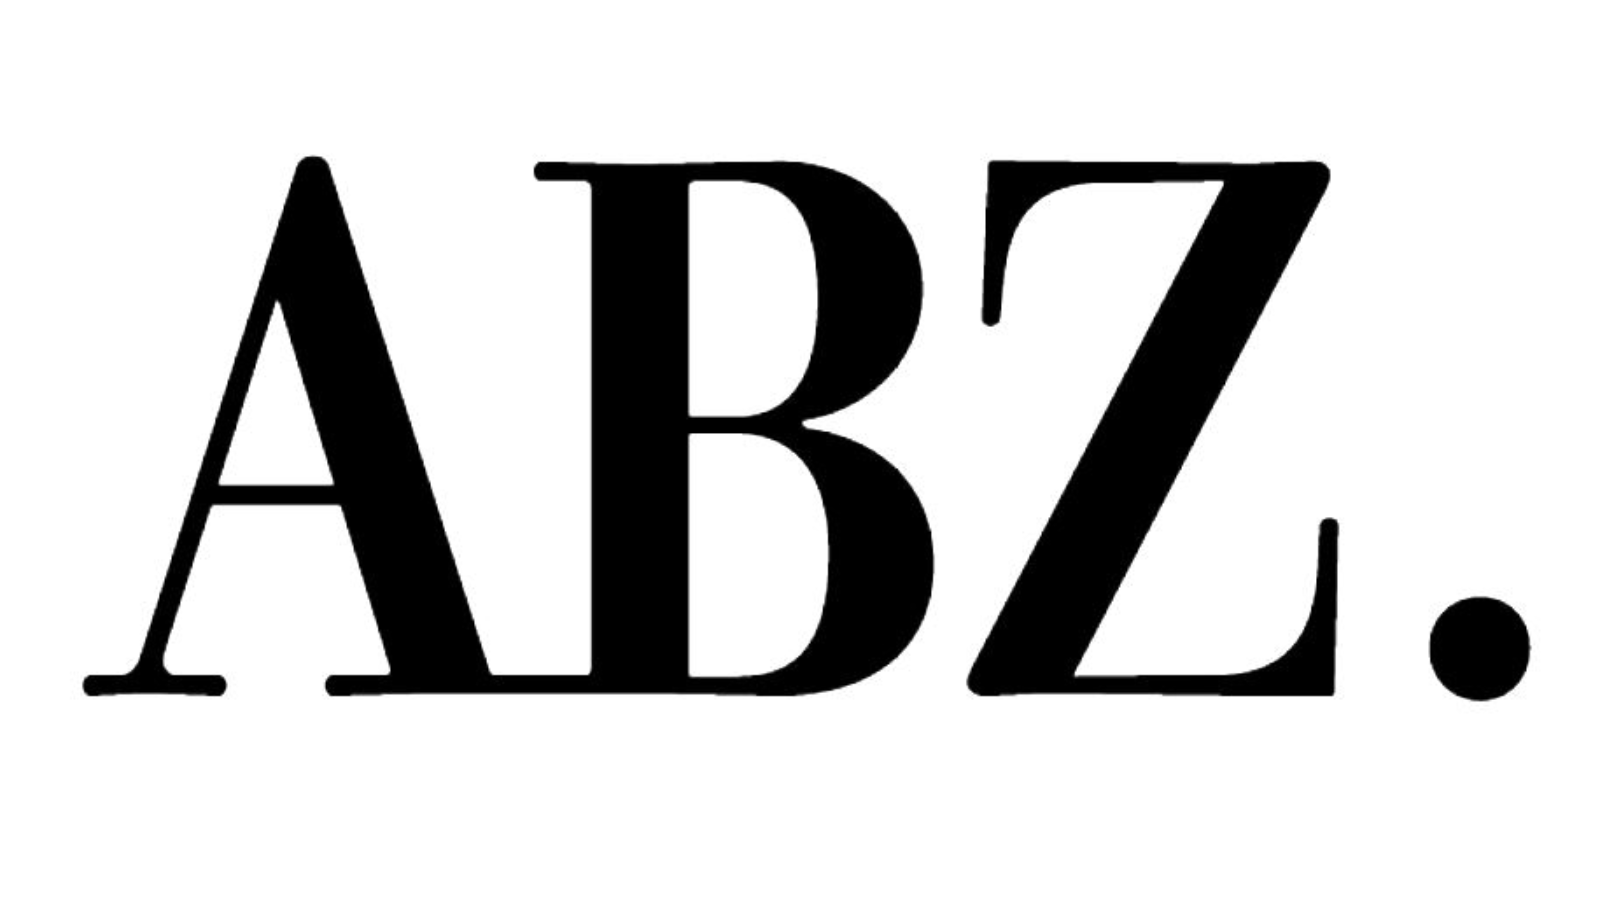 ABZ abbreviated logotype BLACK